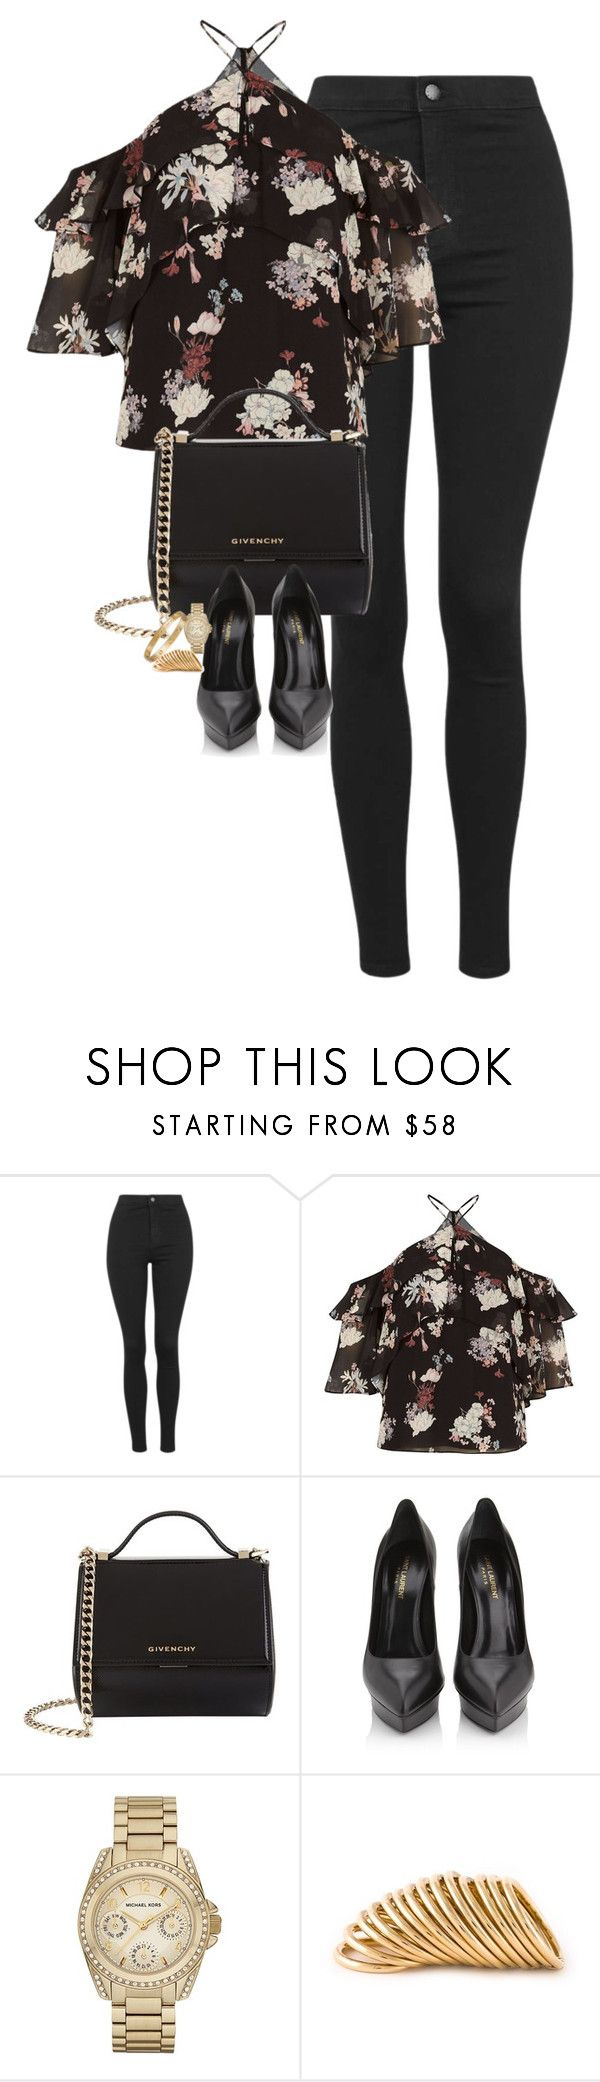 Untitled #1252 by lovetaytay ❤ liked on Polyvore featuring Topshop, River Island, Givenchy, Yves Saint Laurent, Michael Kors and Shaun Leane